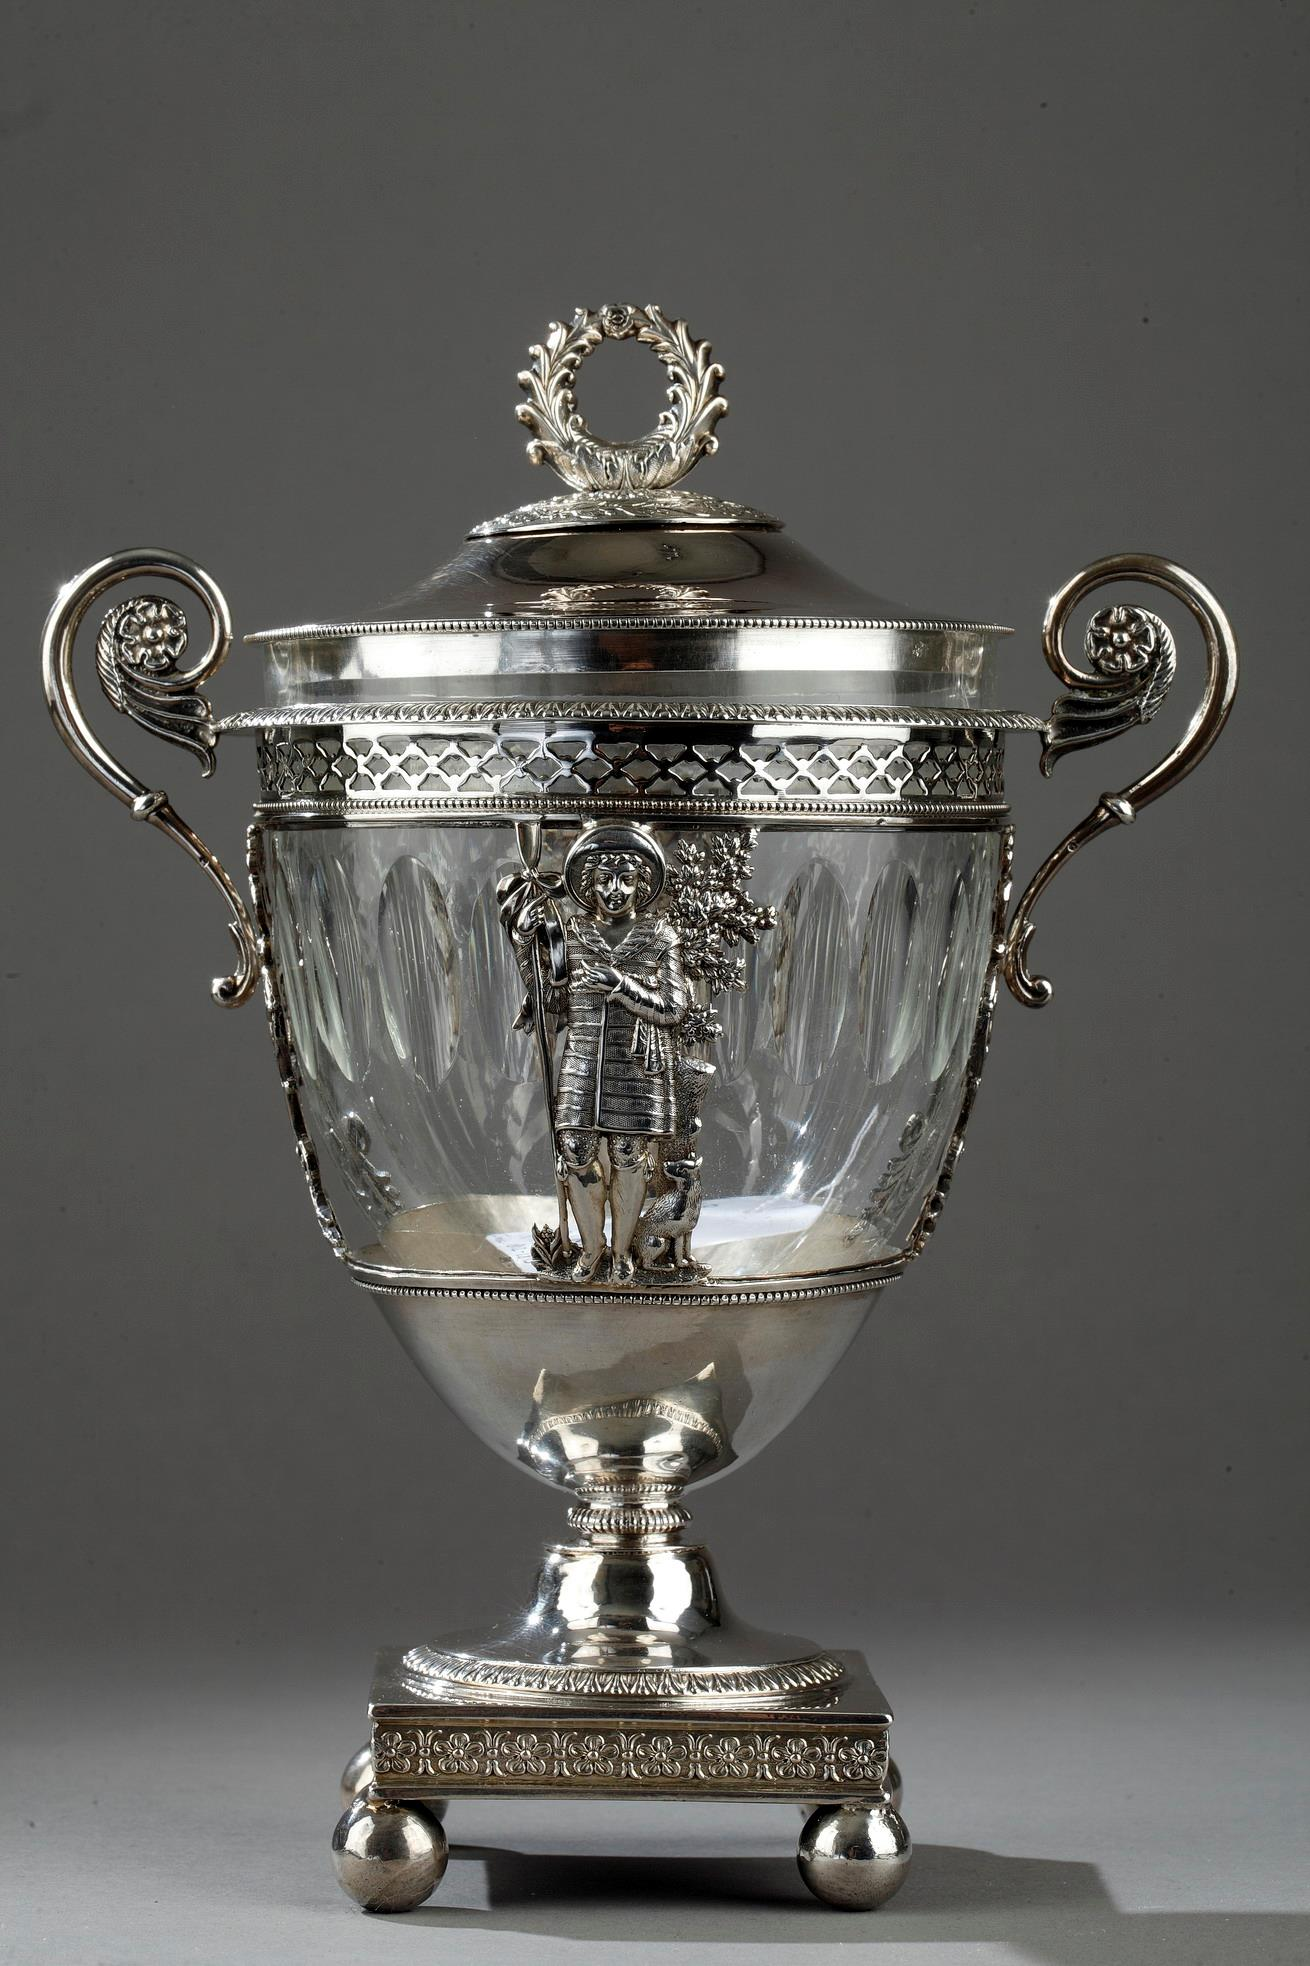 Early 19th century silver and crystal candy dish.